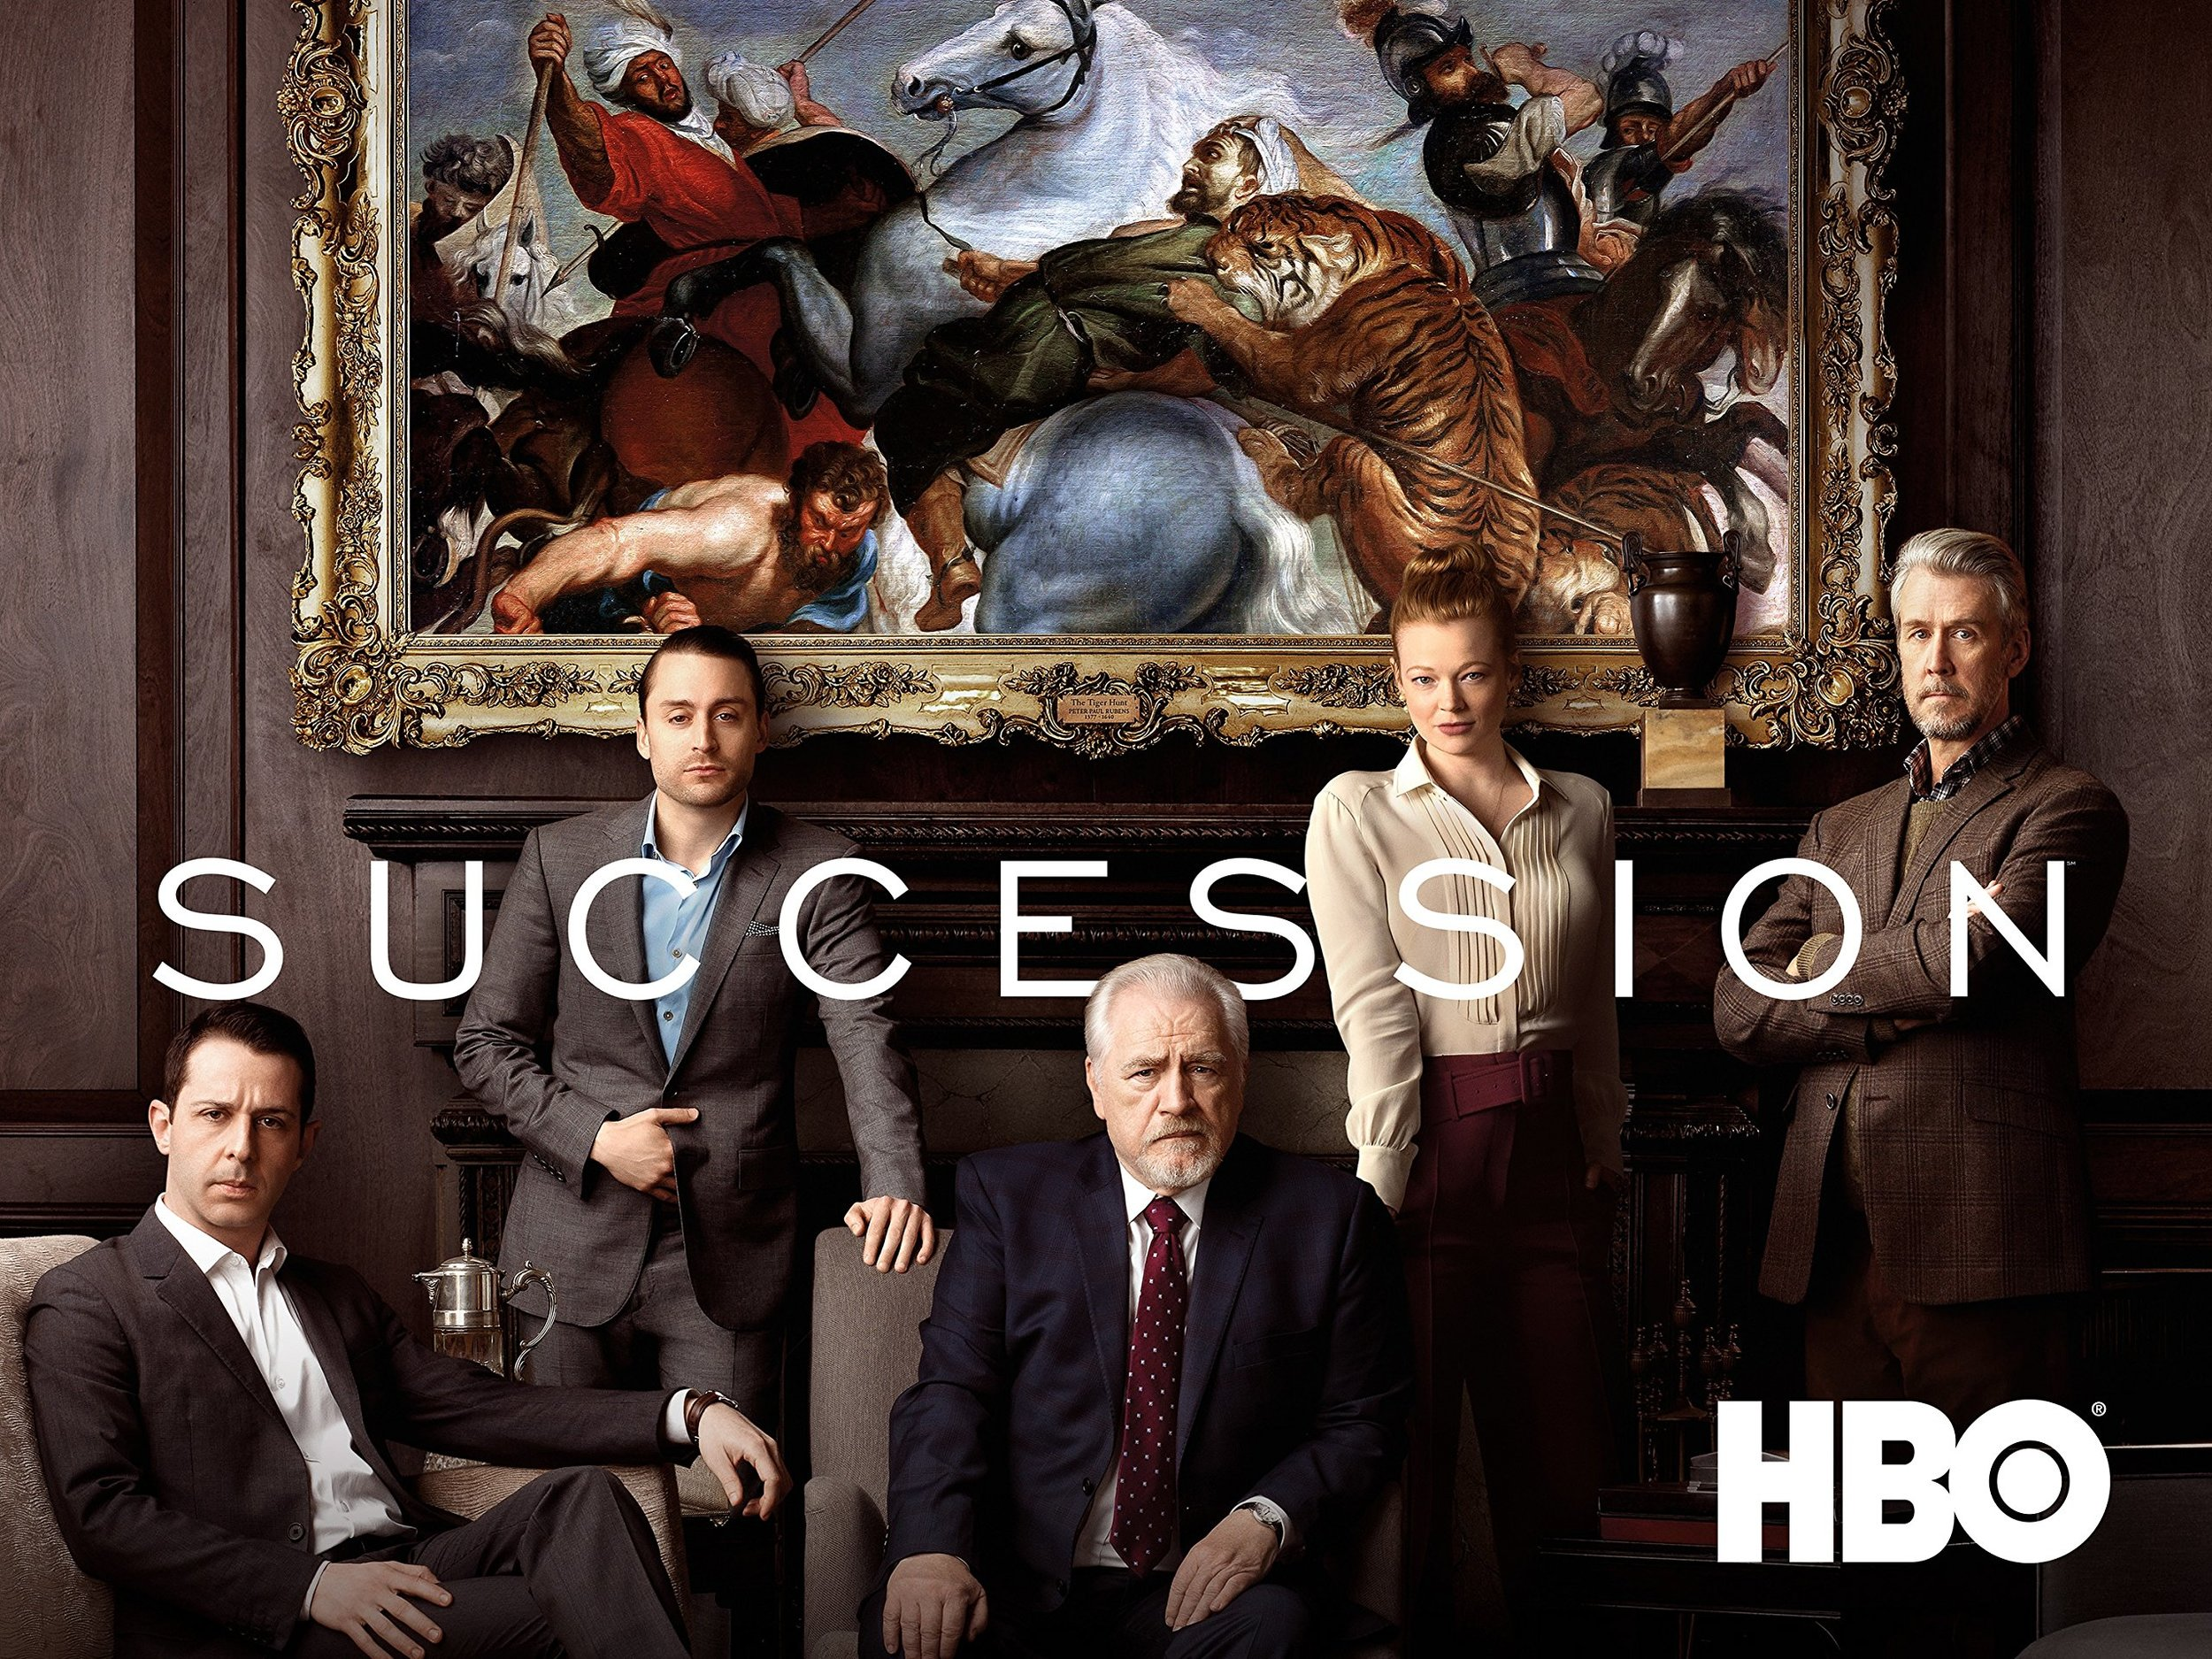 succession tv.jpg